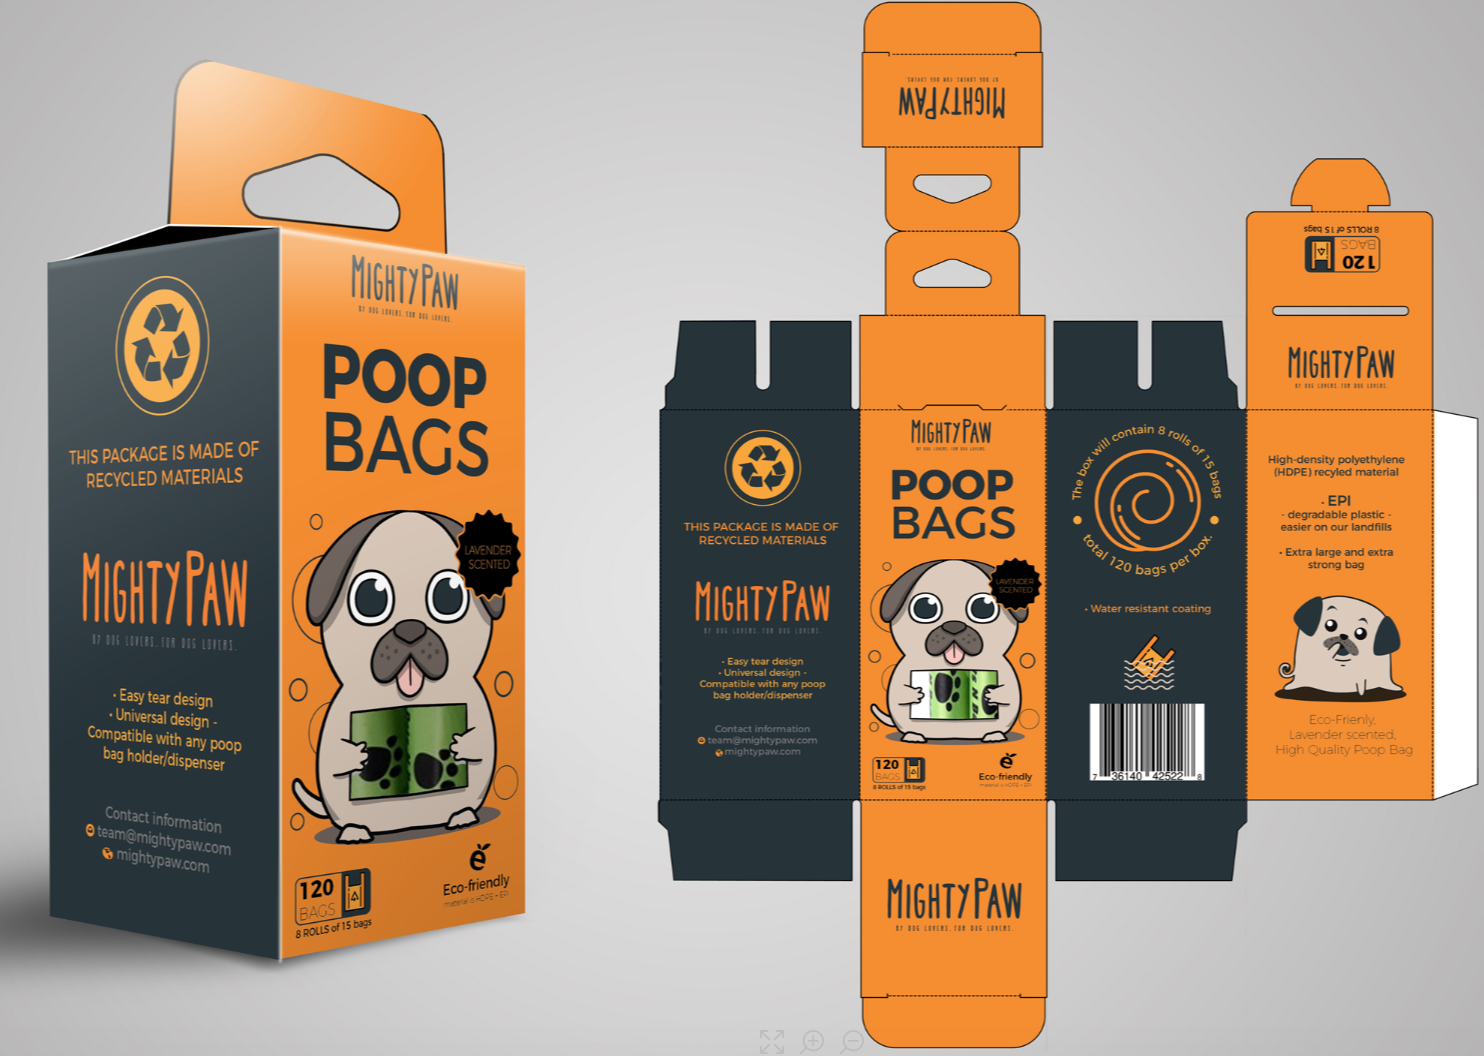 Product Package Designing Service - $19.99